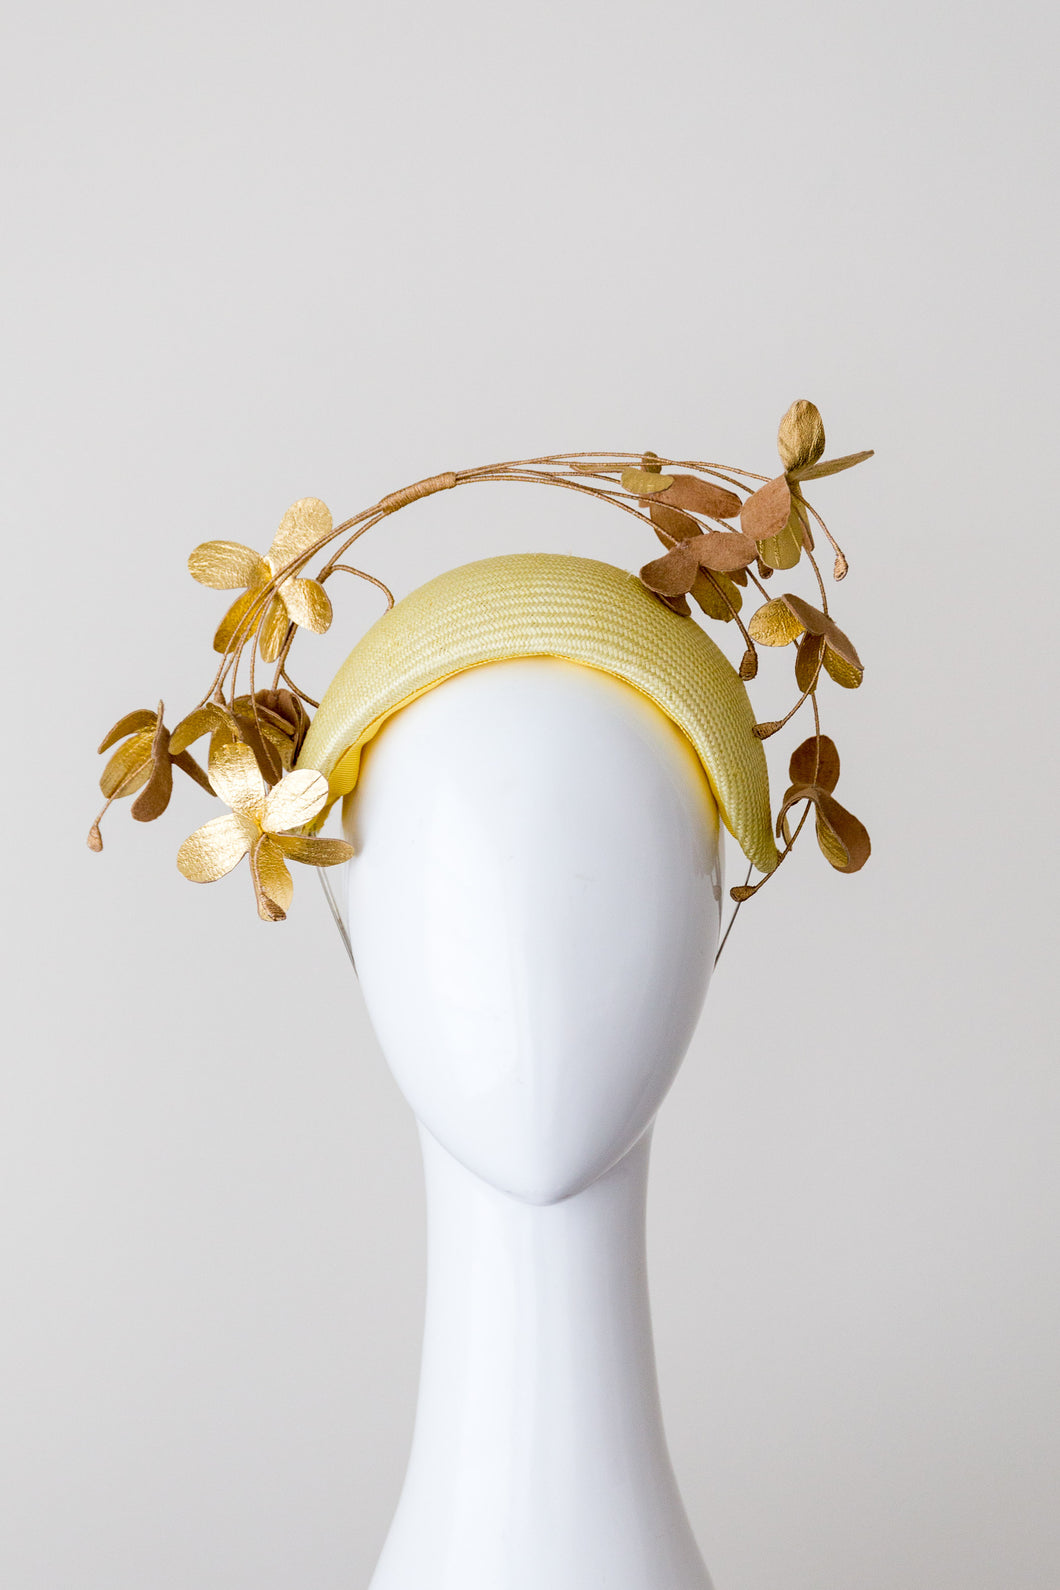 SAMANTHA- Lemon raised headband with gold leather flowers